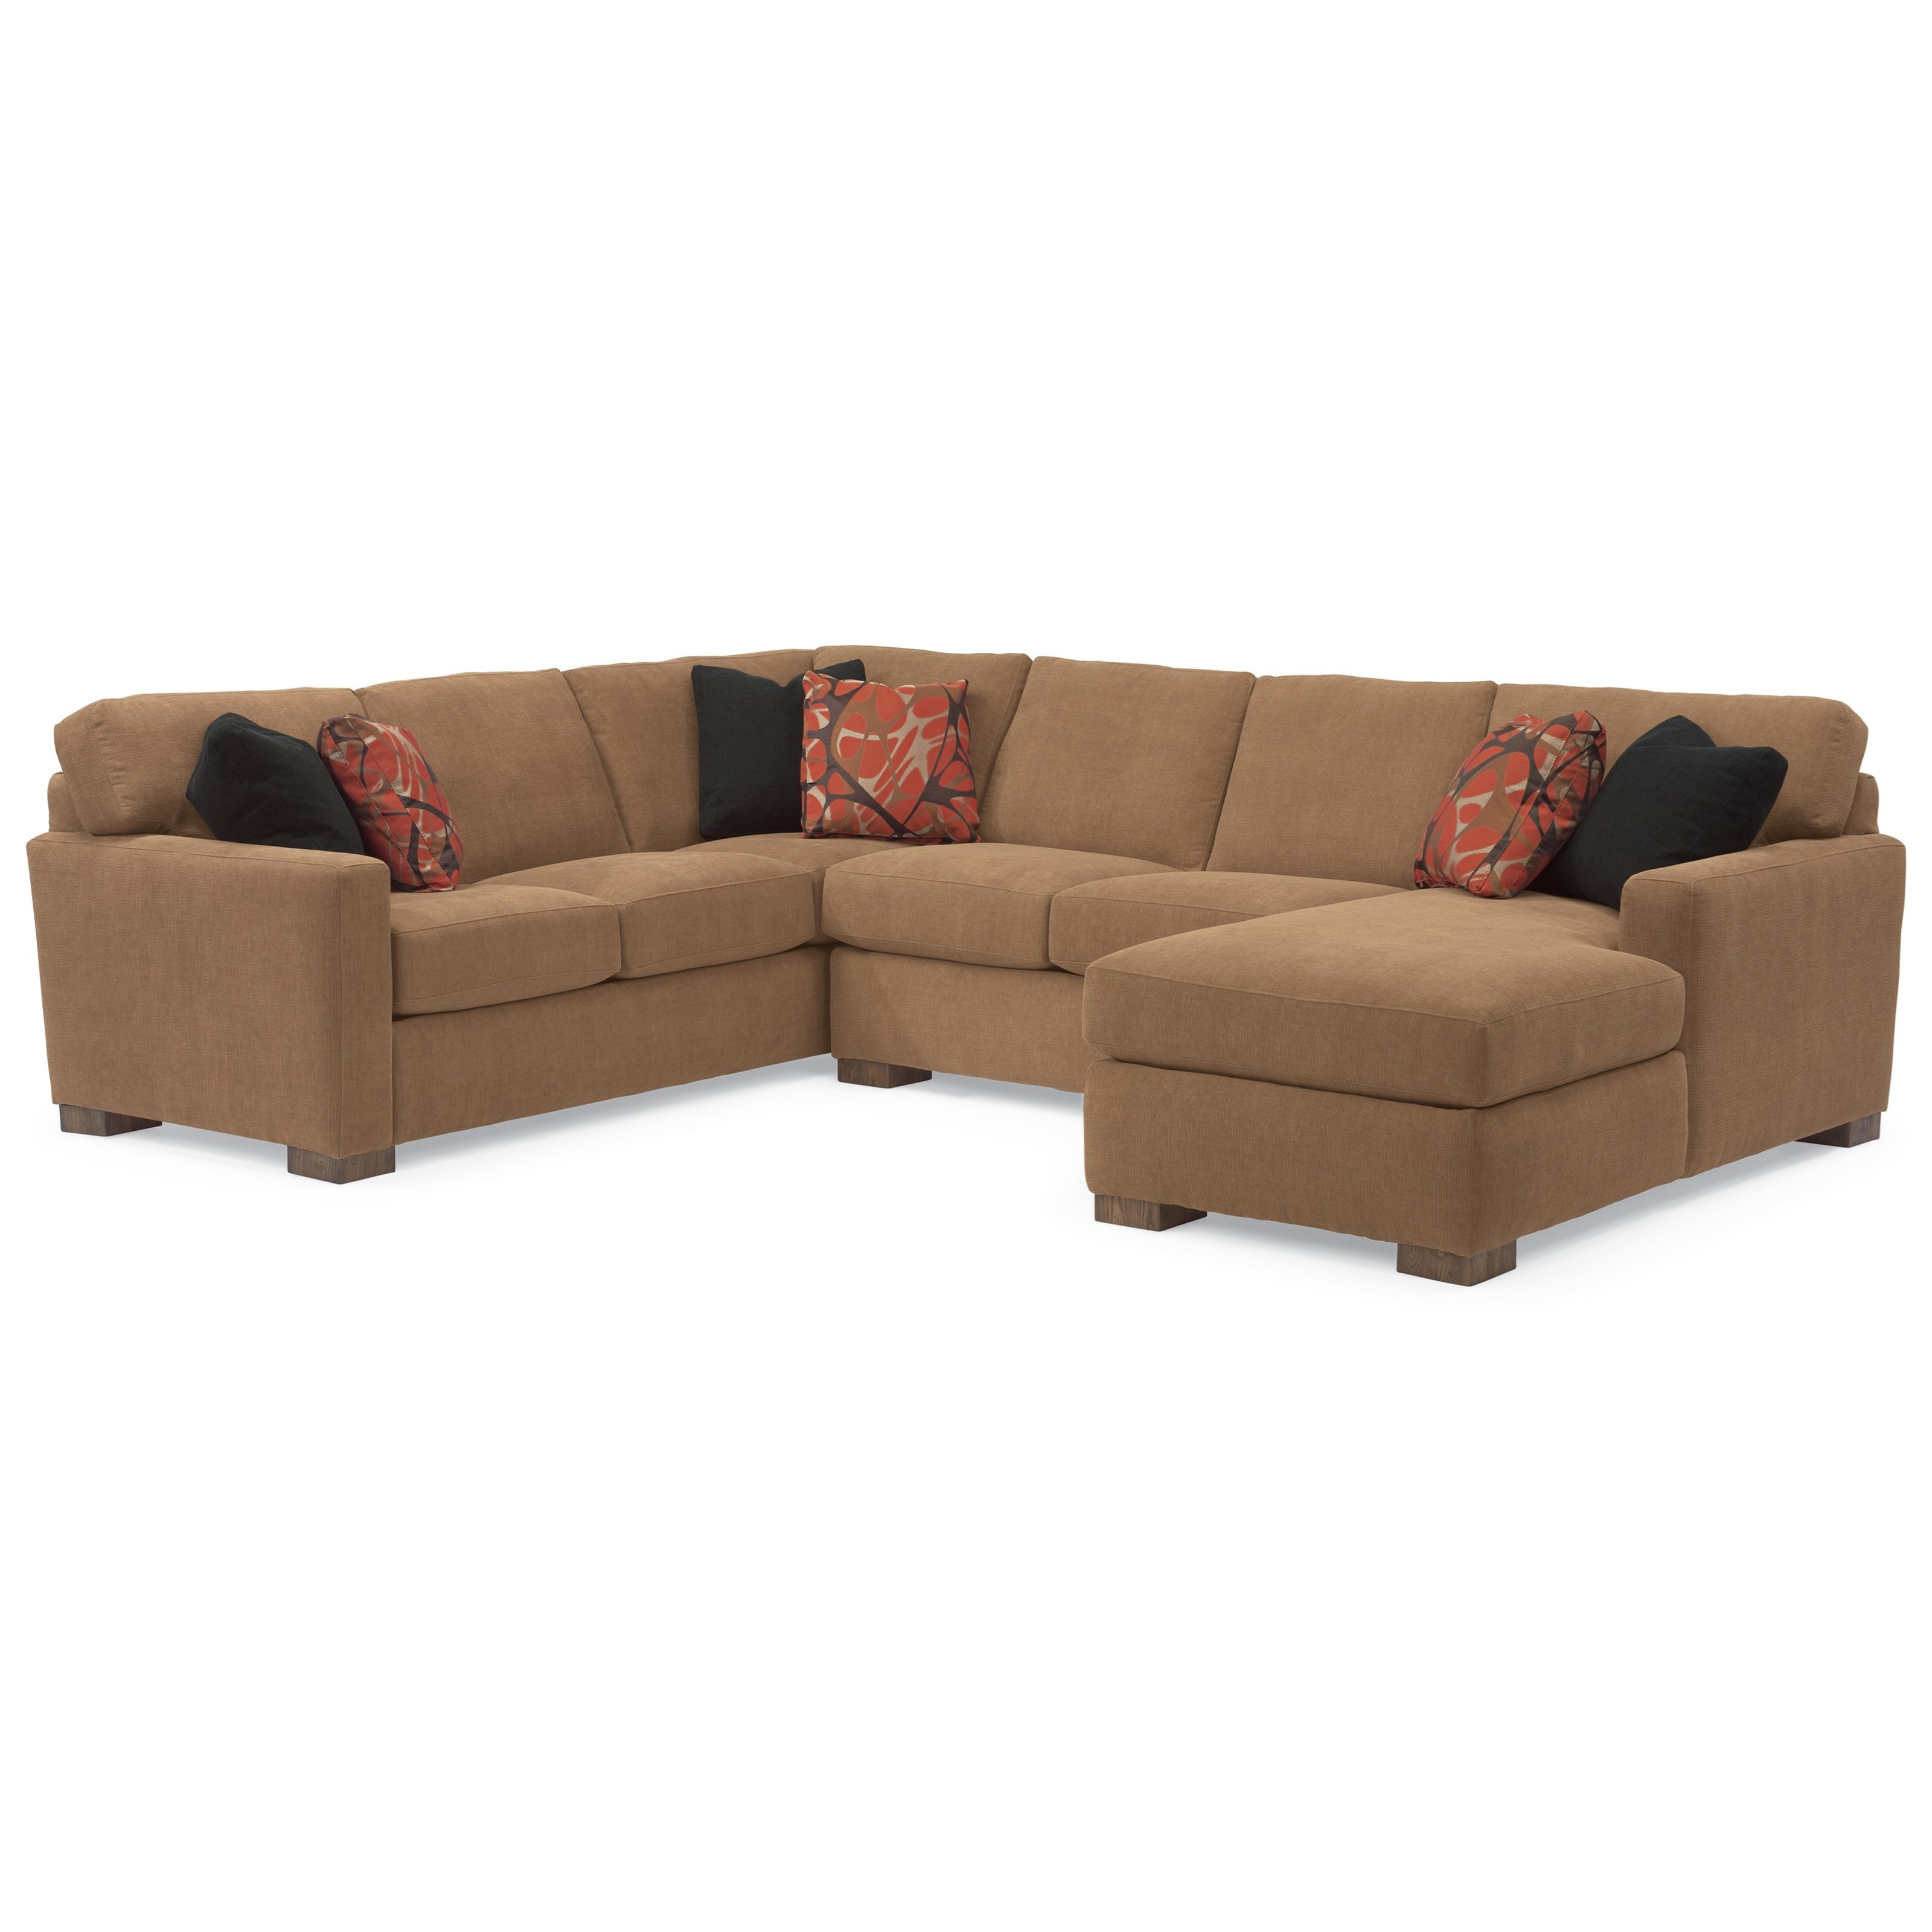 Flexsteel Bryant Contemporary Sectional Sofa With 3 Modular